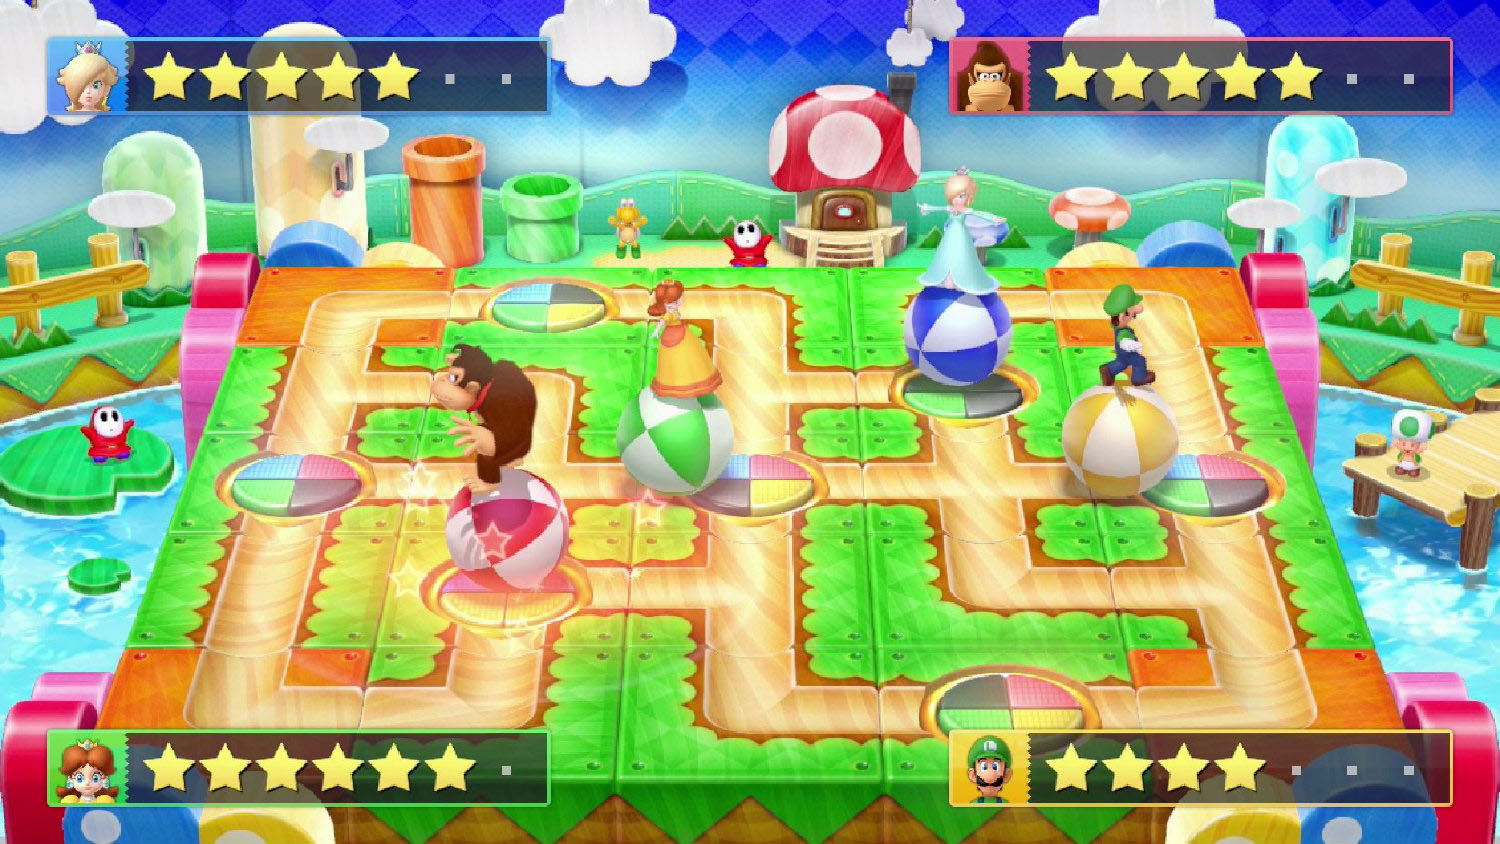 New Batch of Mario Party 10 Screens, Toadette Playable ...